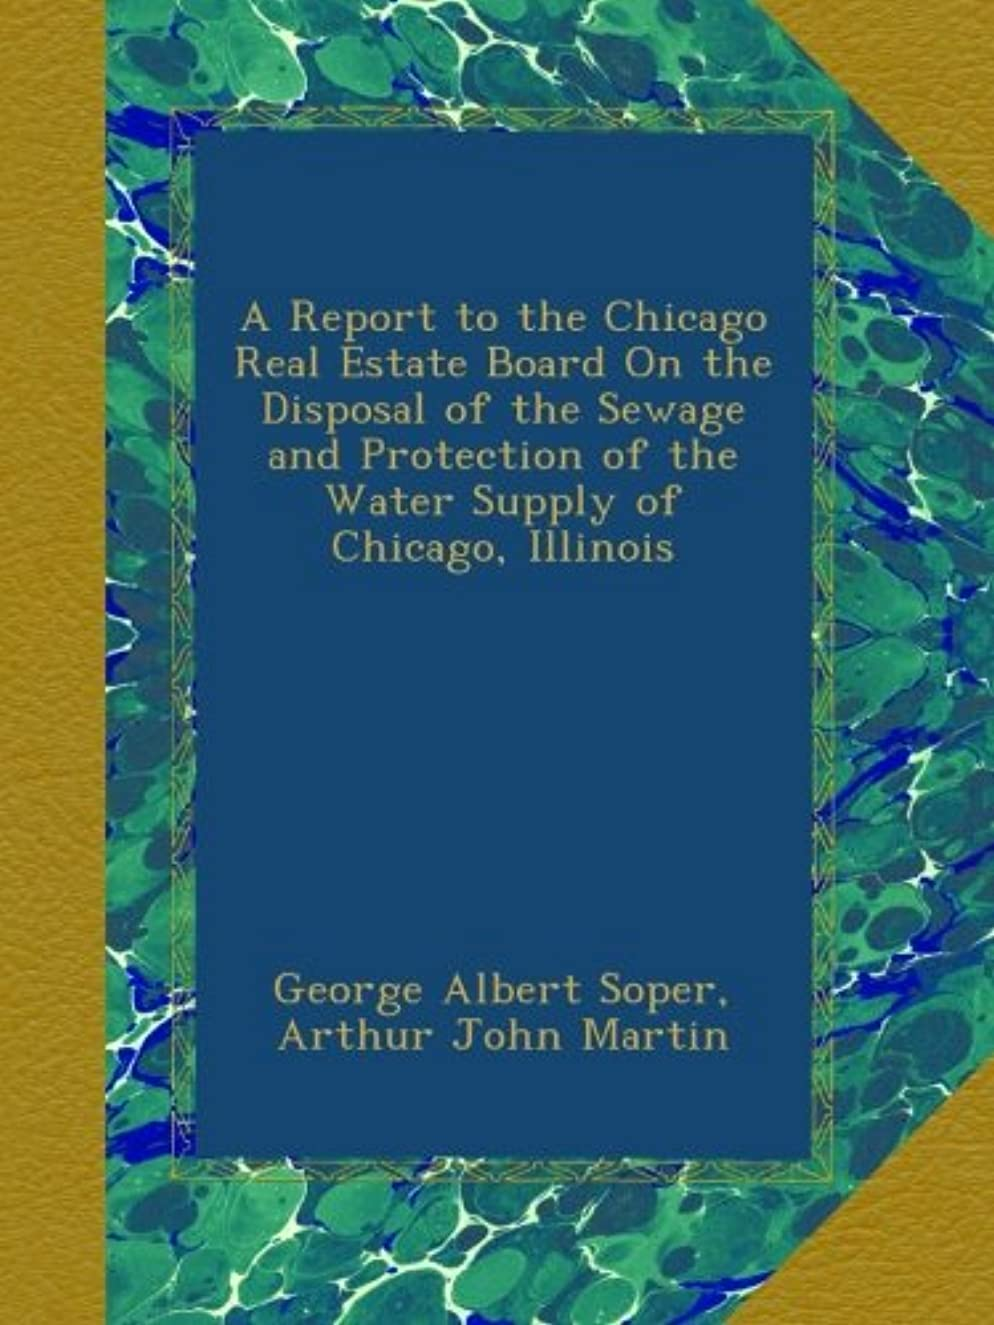 コイルメイン電気A Report to the Chicago Real Estate Board On the Disposal of the Sewage and Protection of the Water Supply of Chicago, Illinois